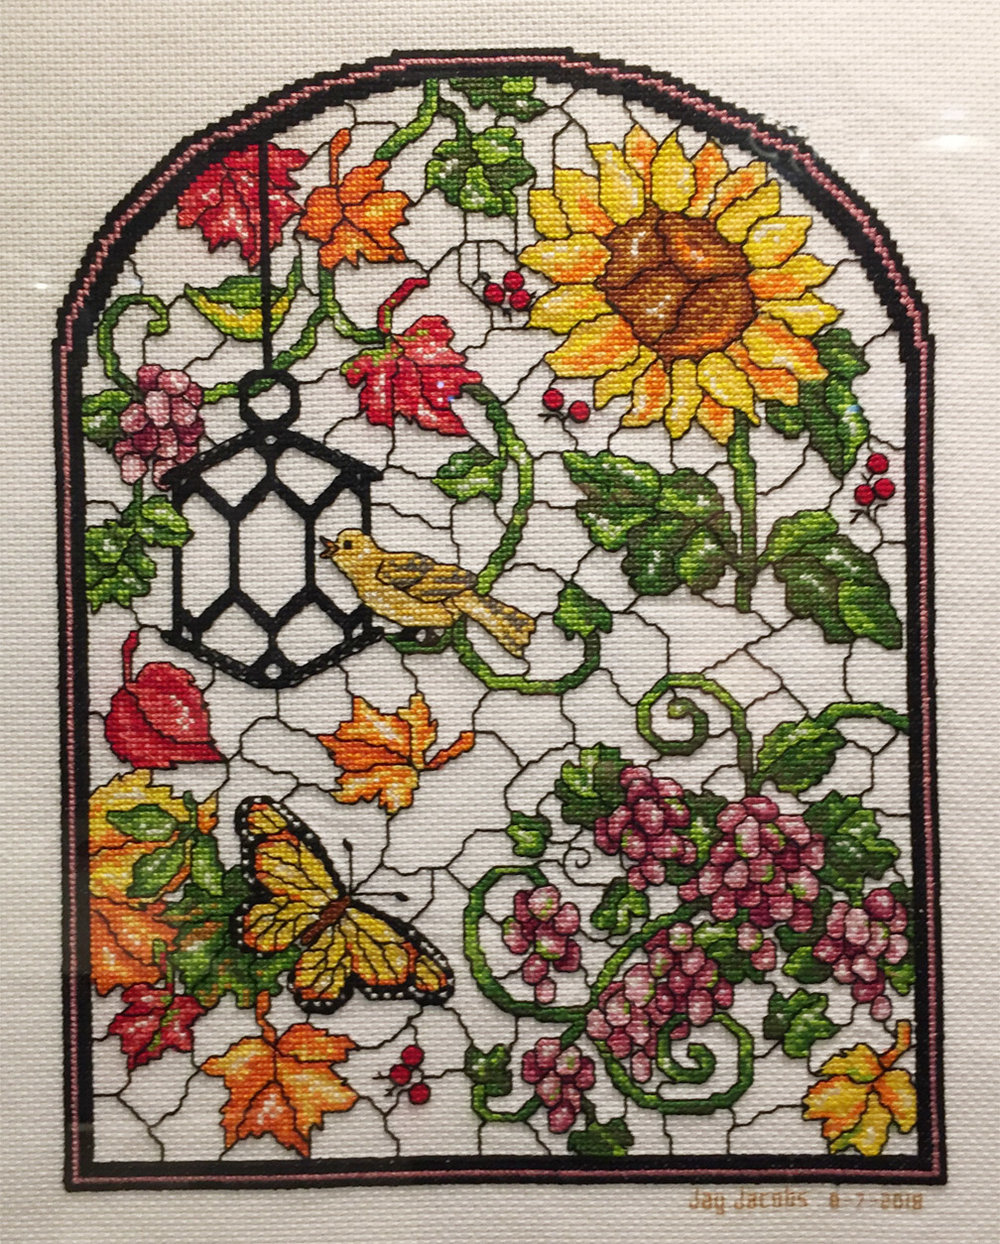 Stained -Glass Songbird   J. Jacobs